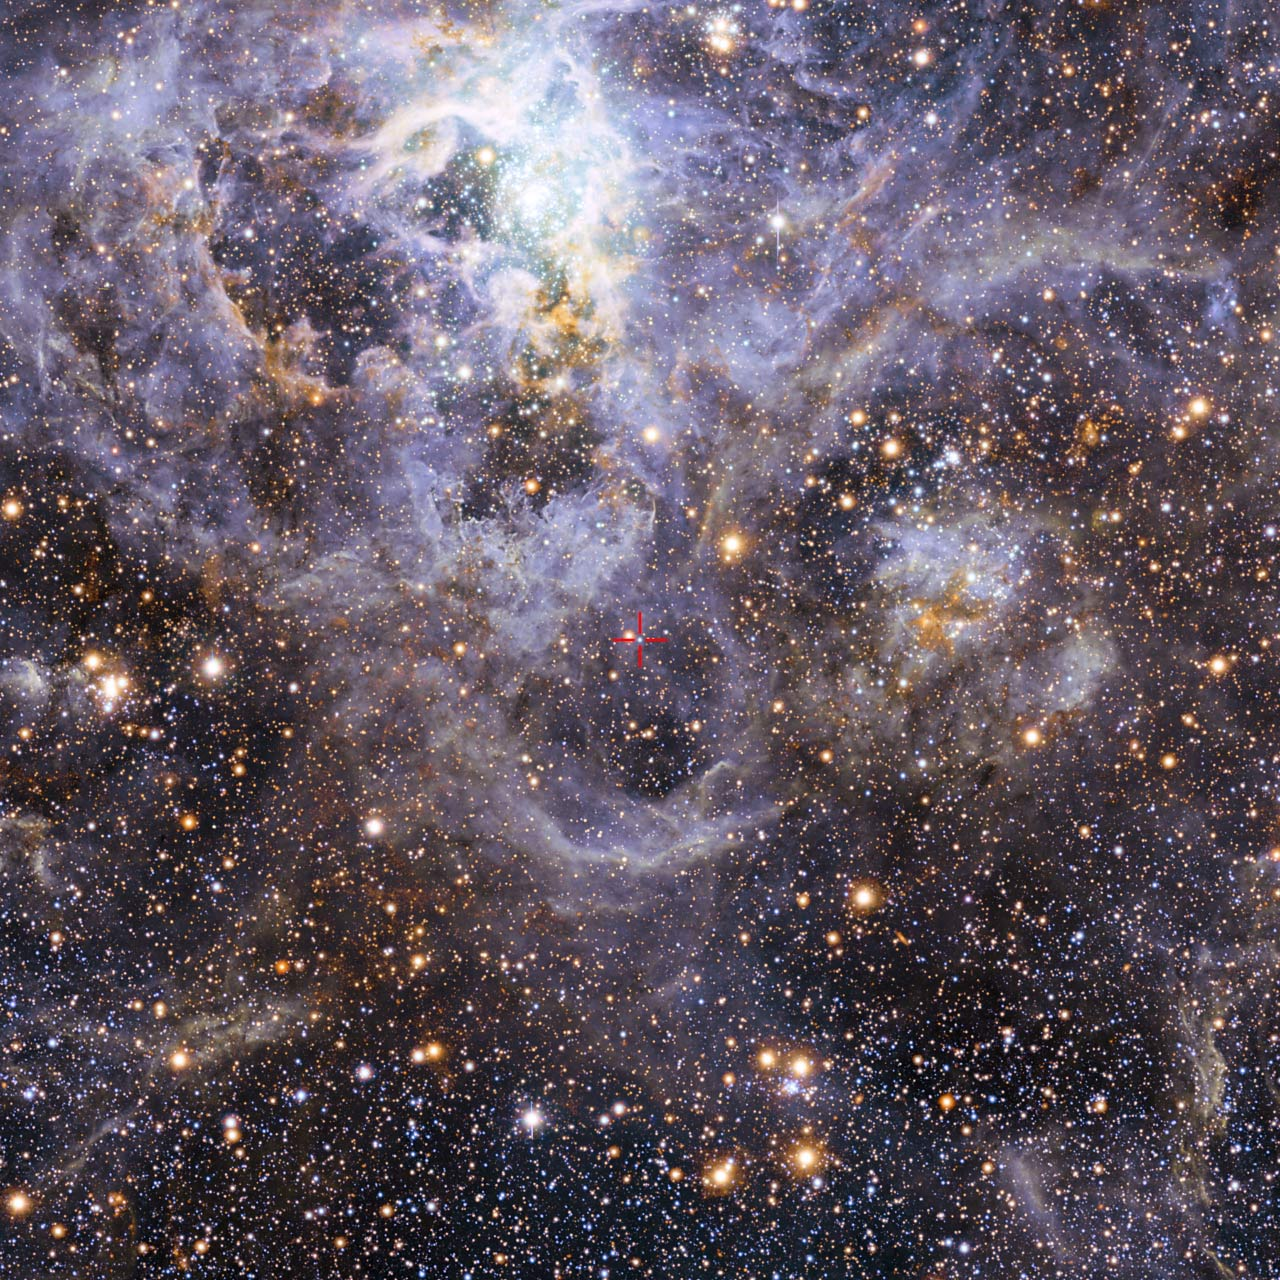 VFTS 352: Astronomers Spot Hottest, Most Massive